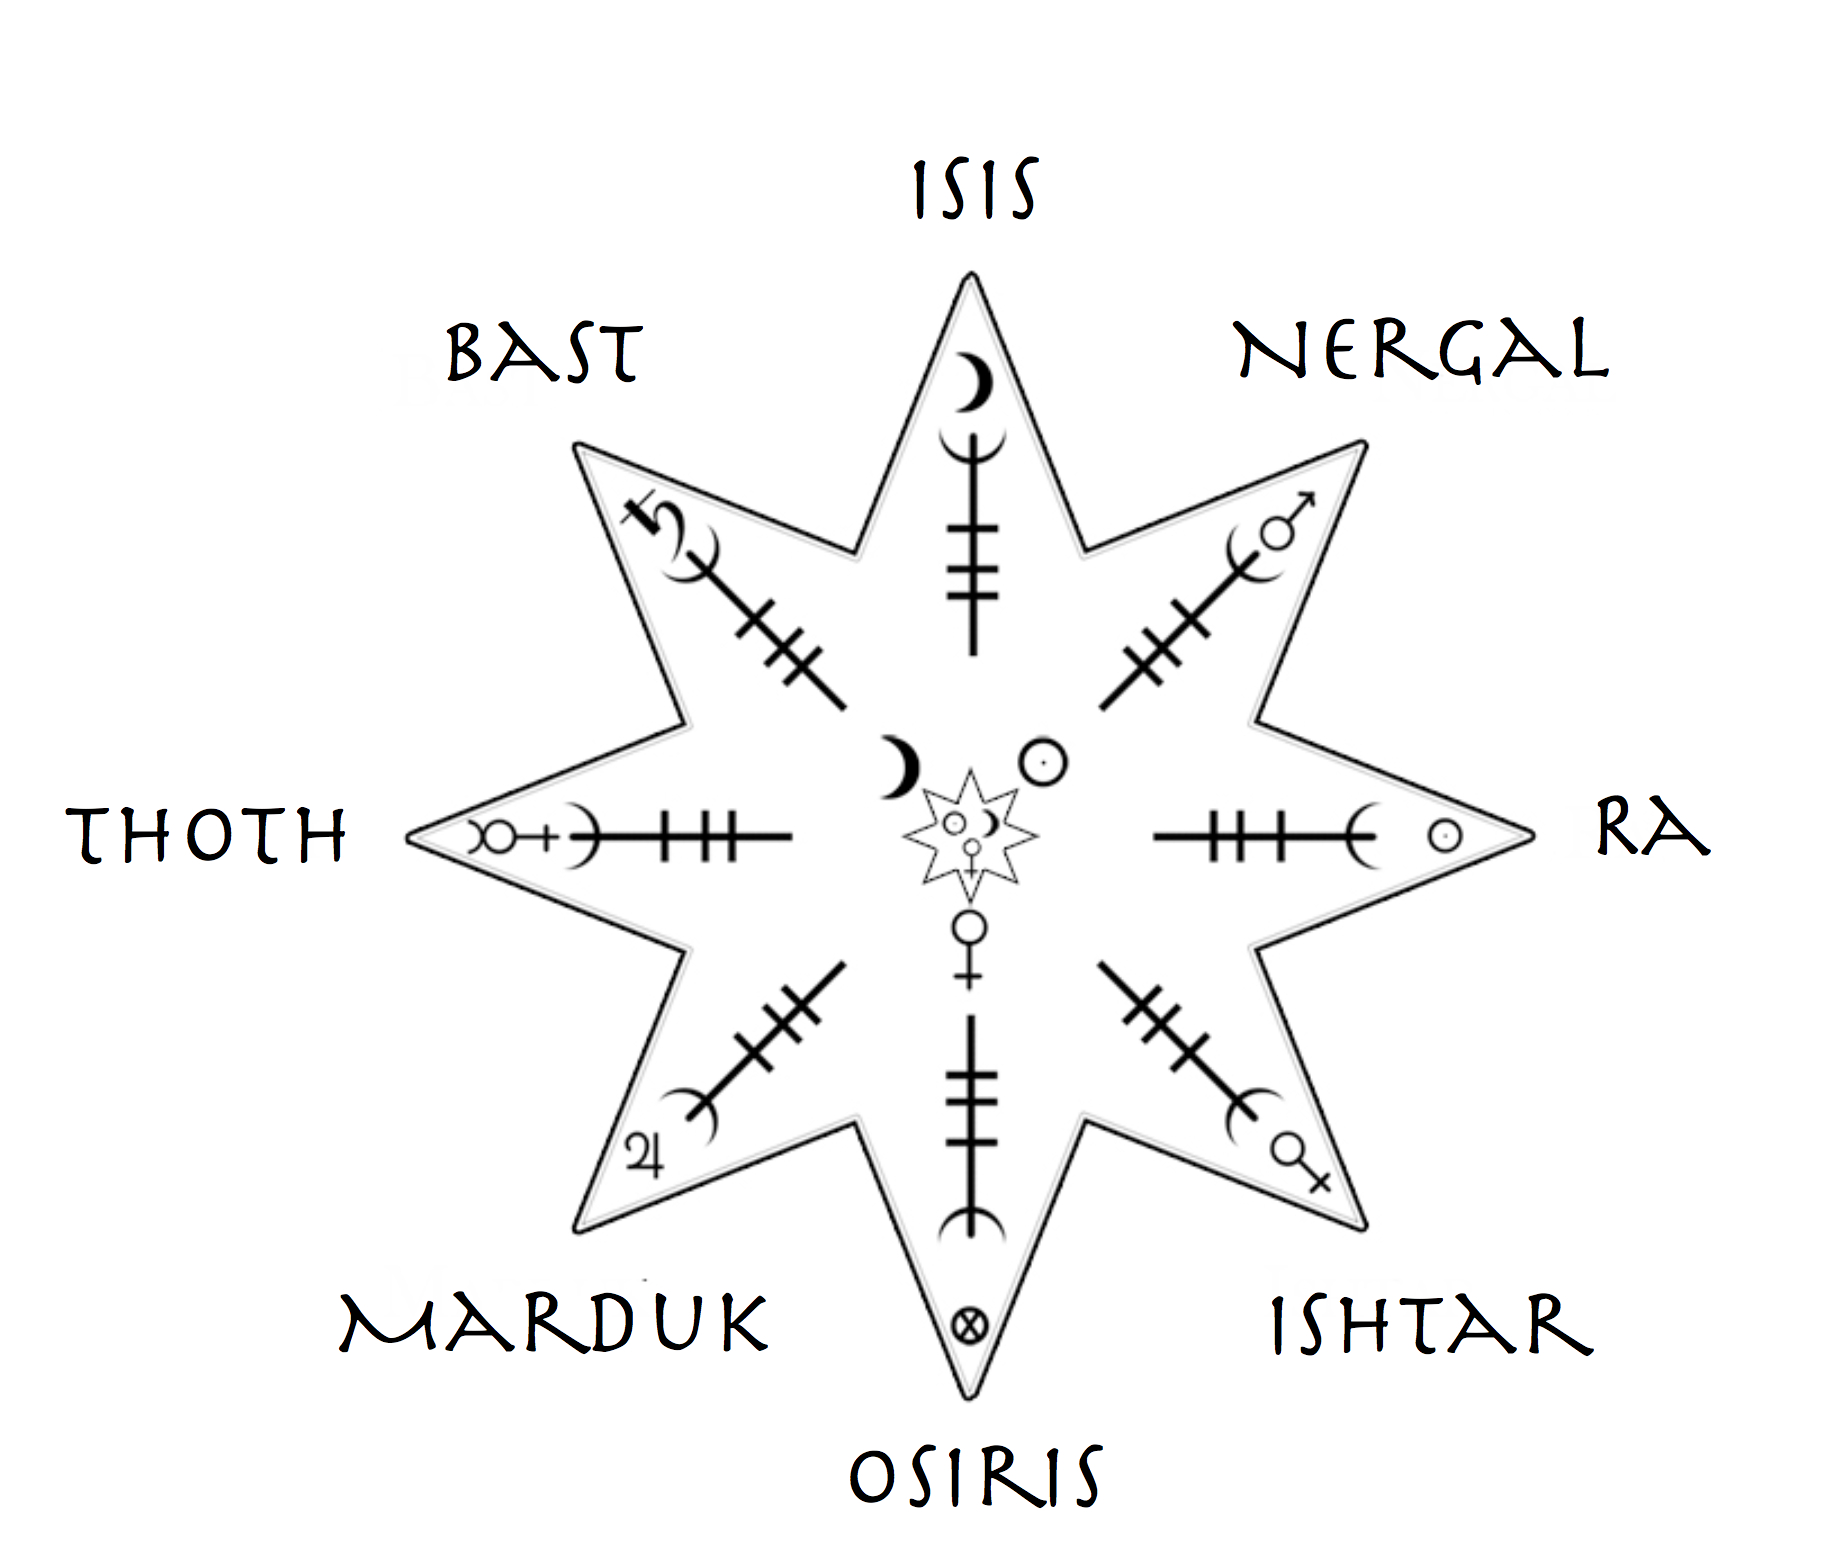 The Eight Pointed Star